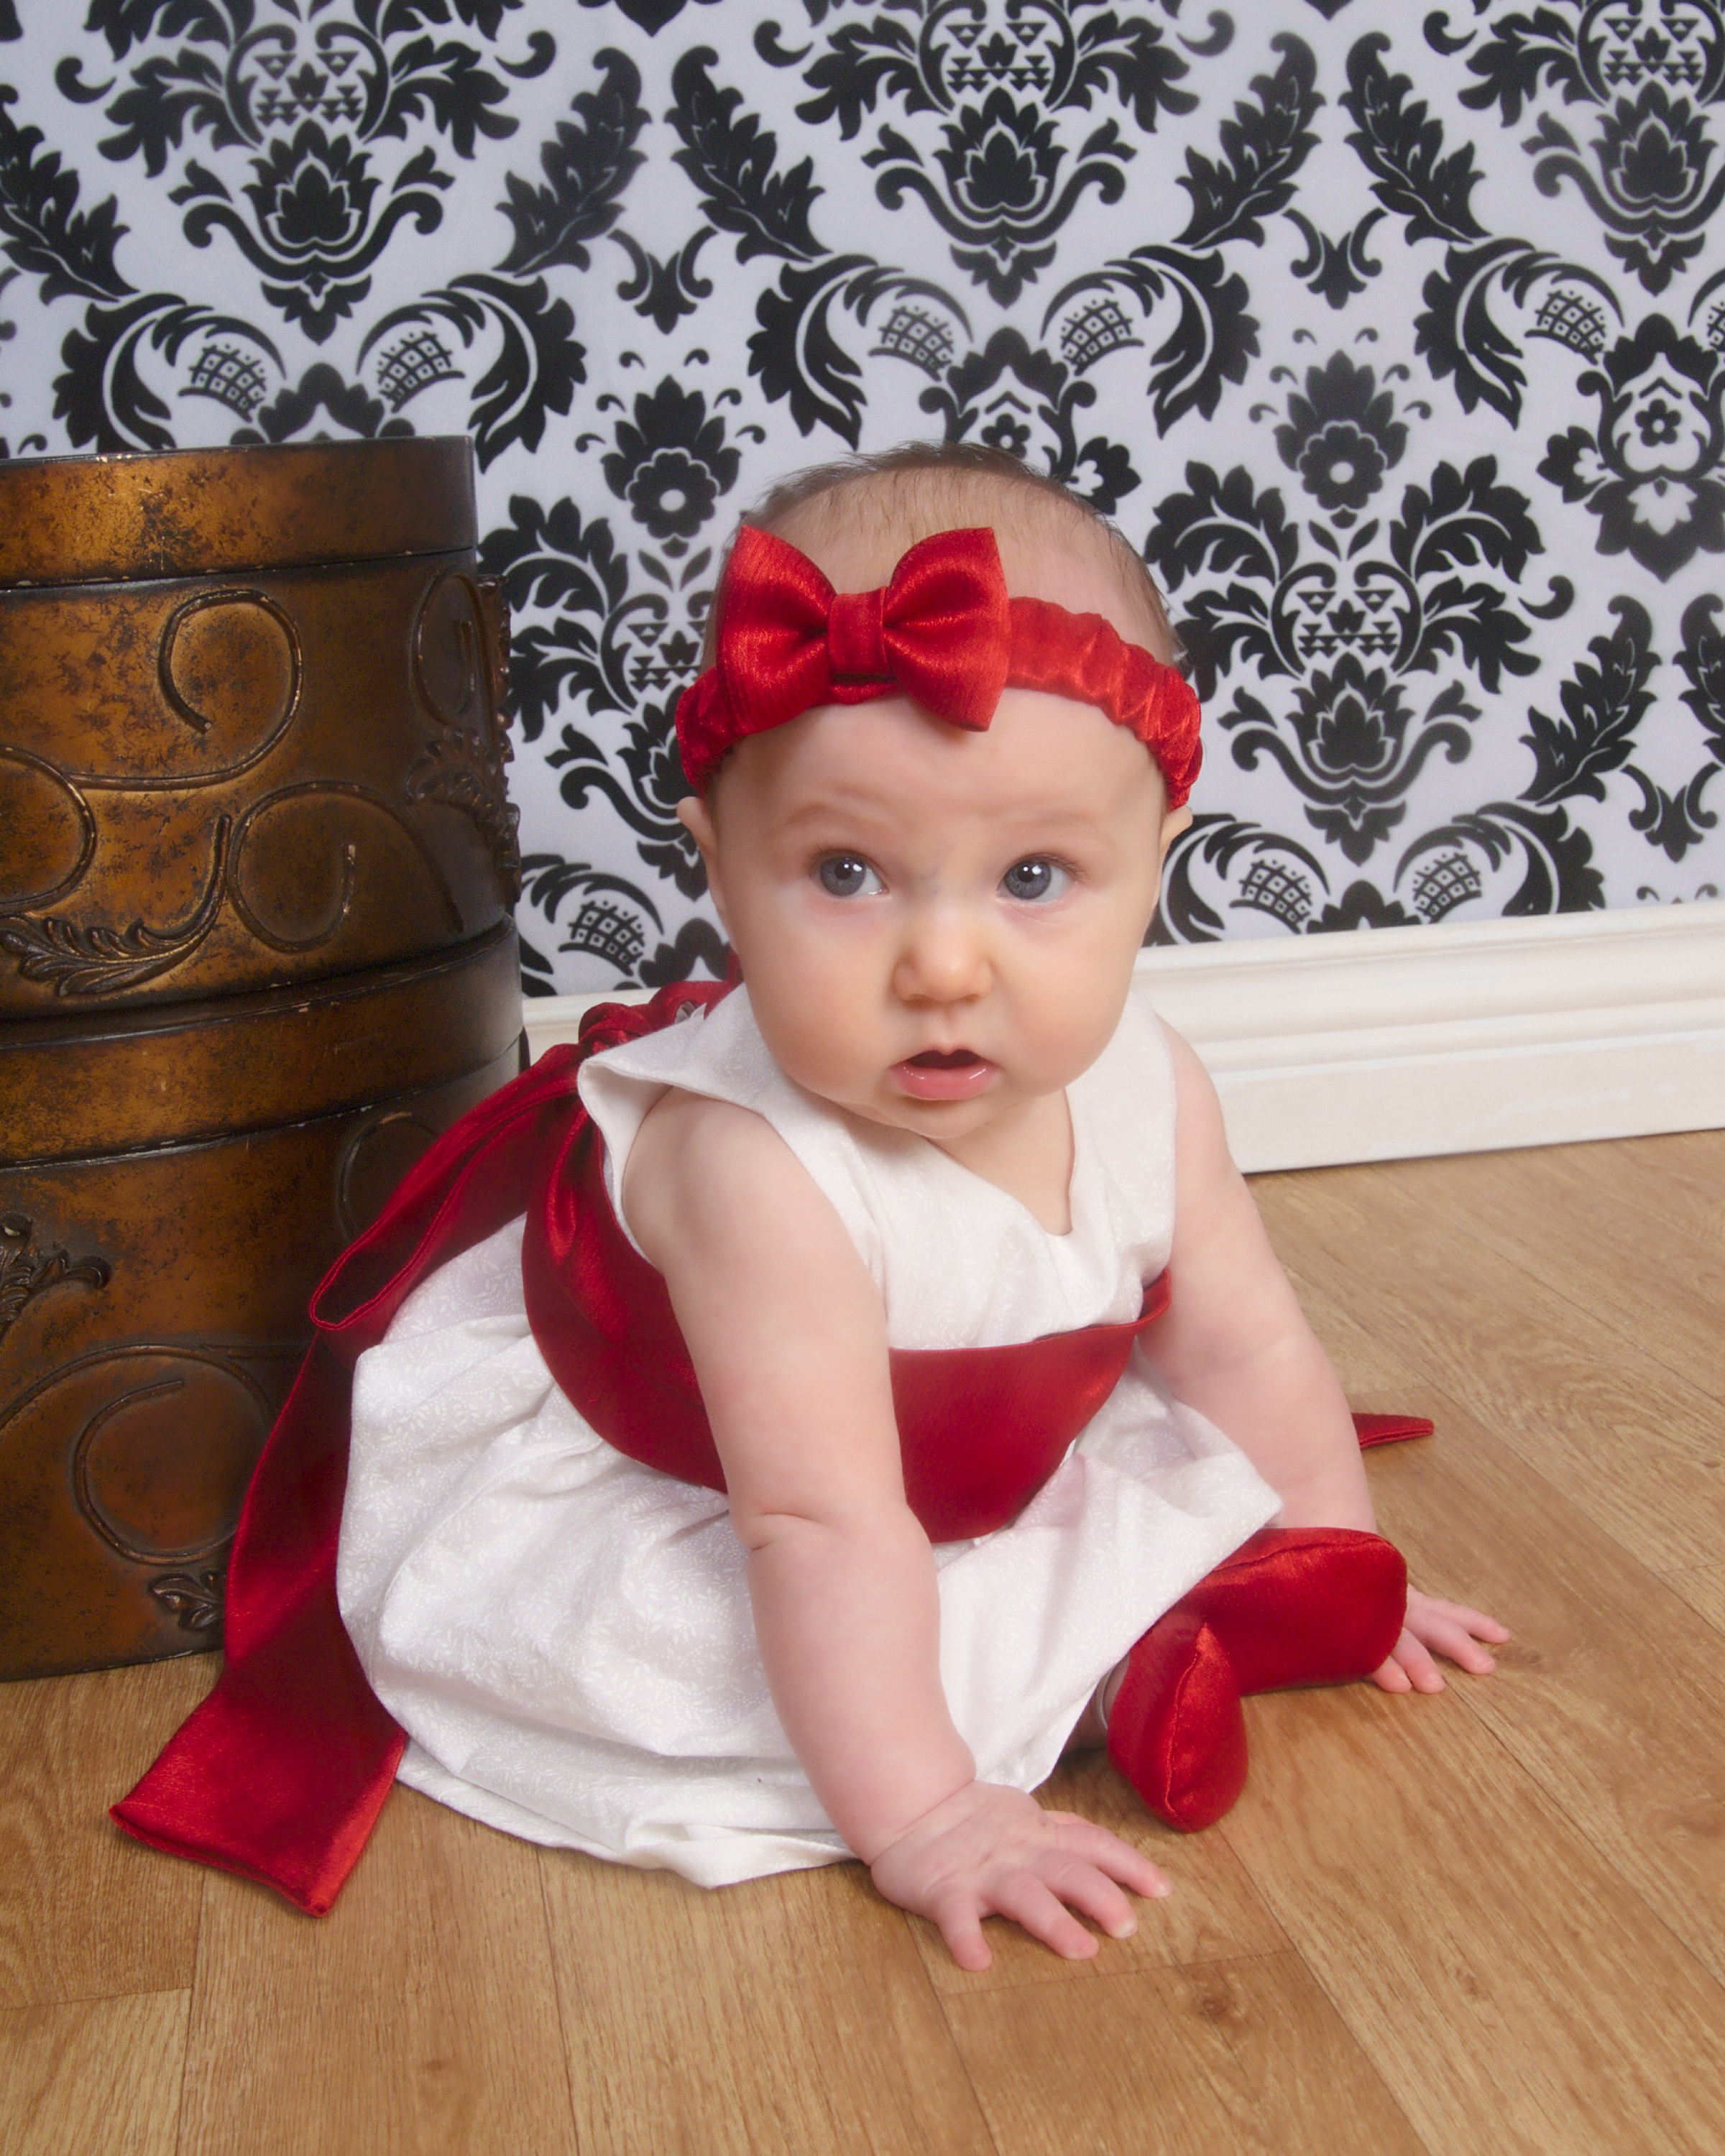 Christmas dress for baby - Advertisements